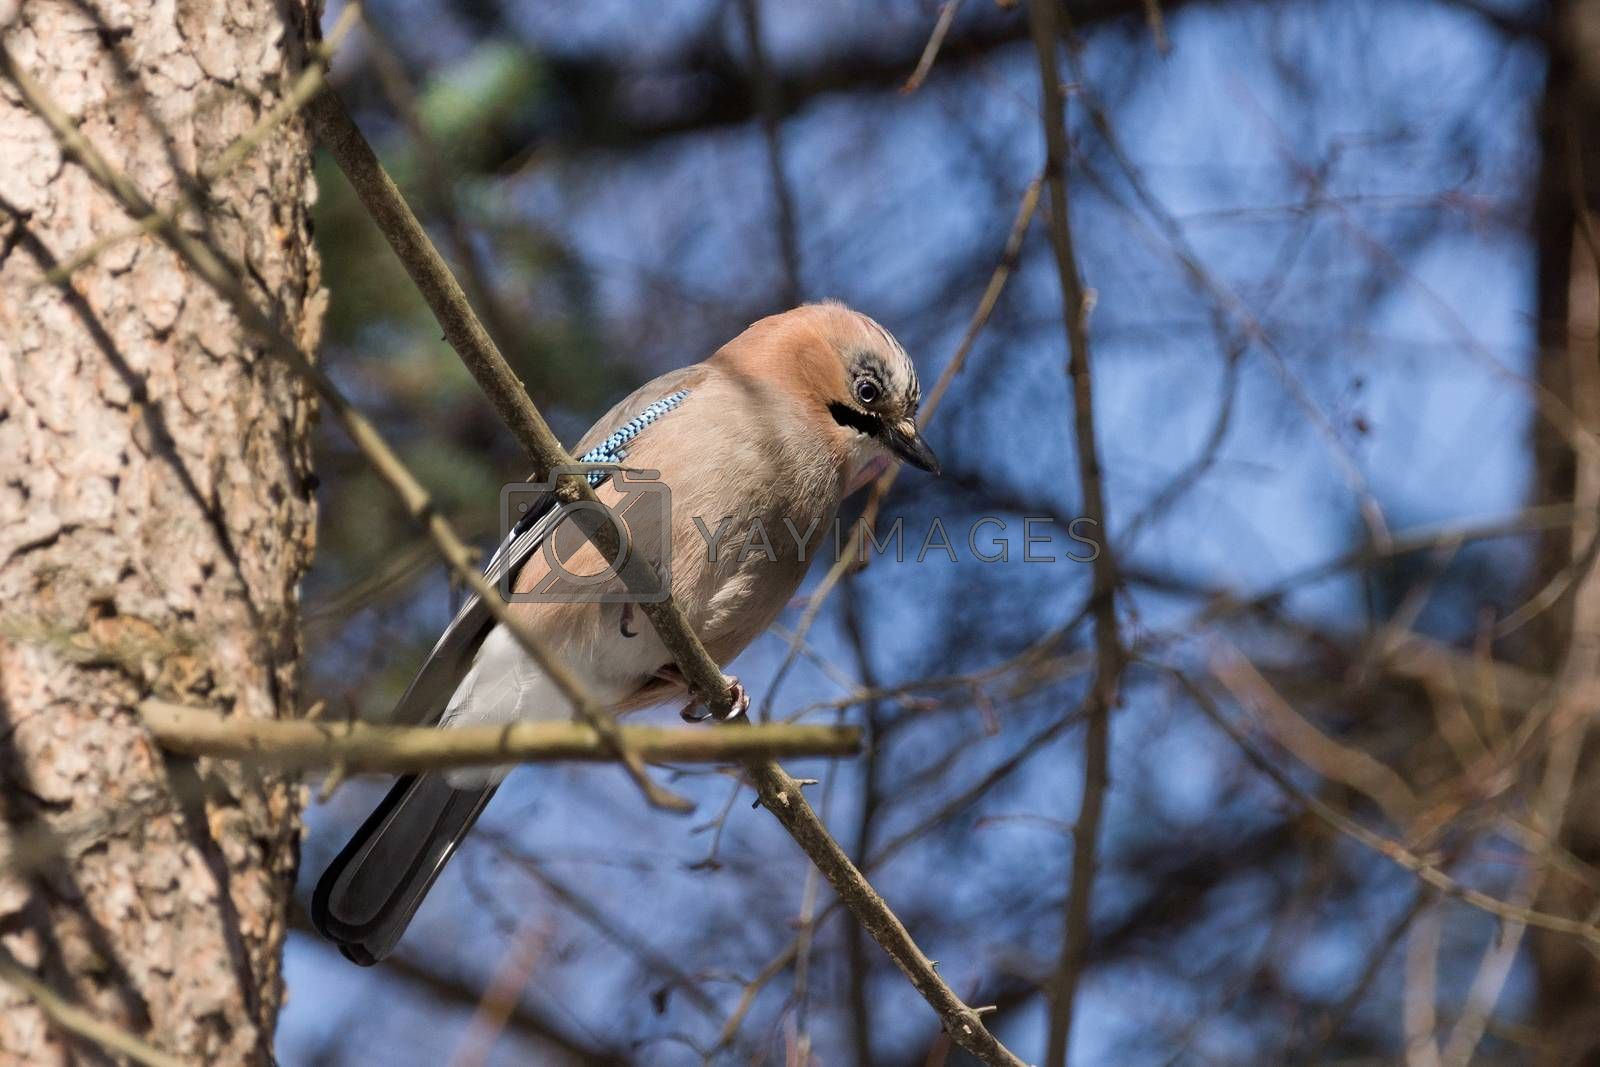 Royalty free image of jay on a branch by AlexBush